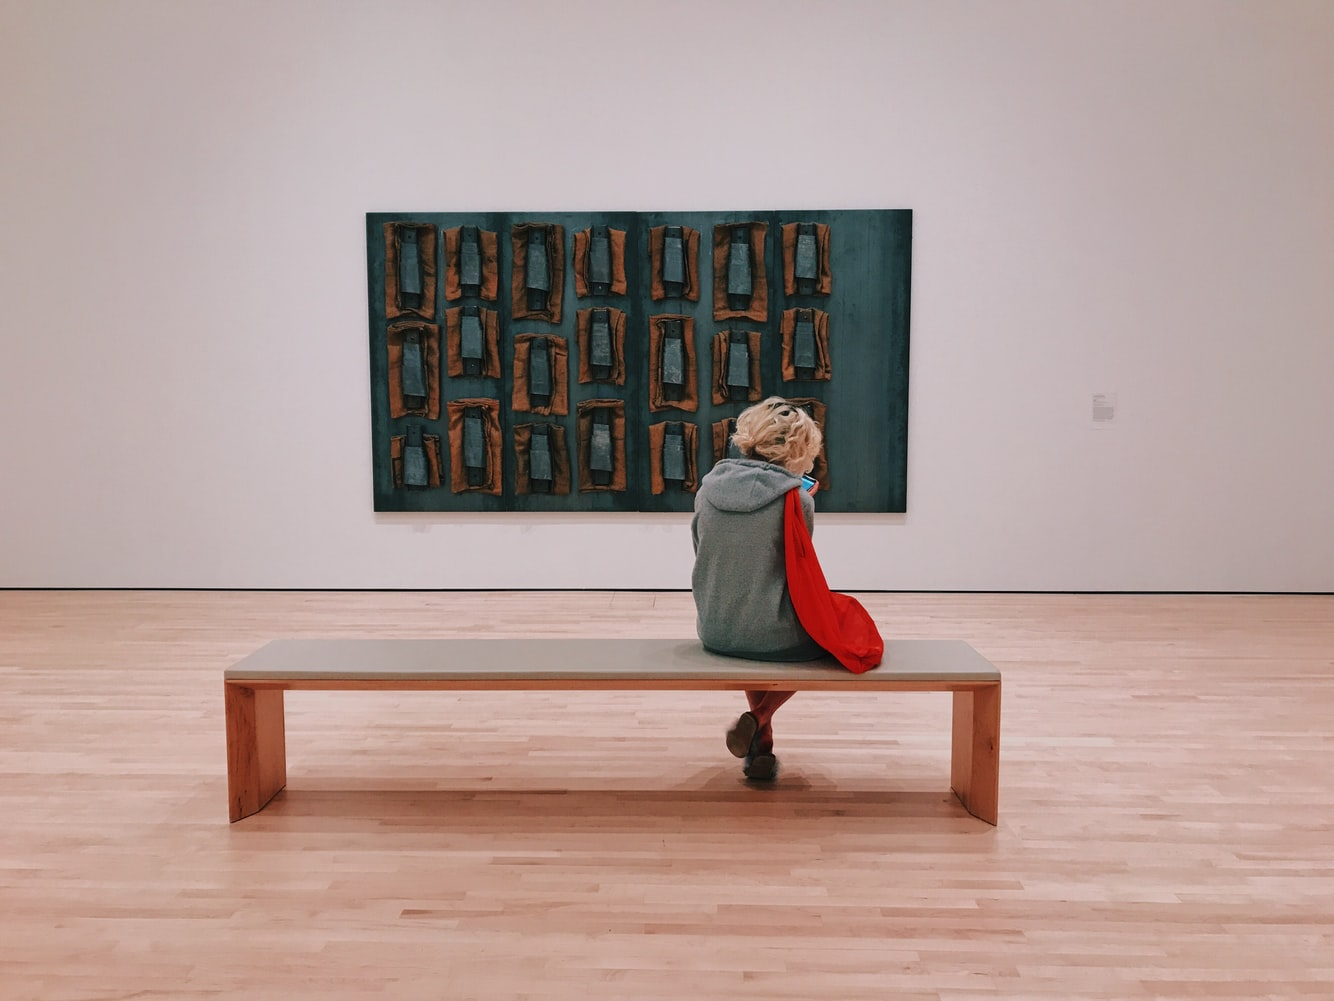 Back view of a person sitting on a bench in a museum, looking at a painting.